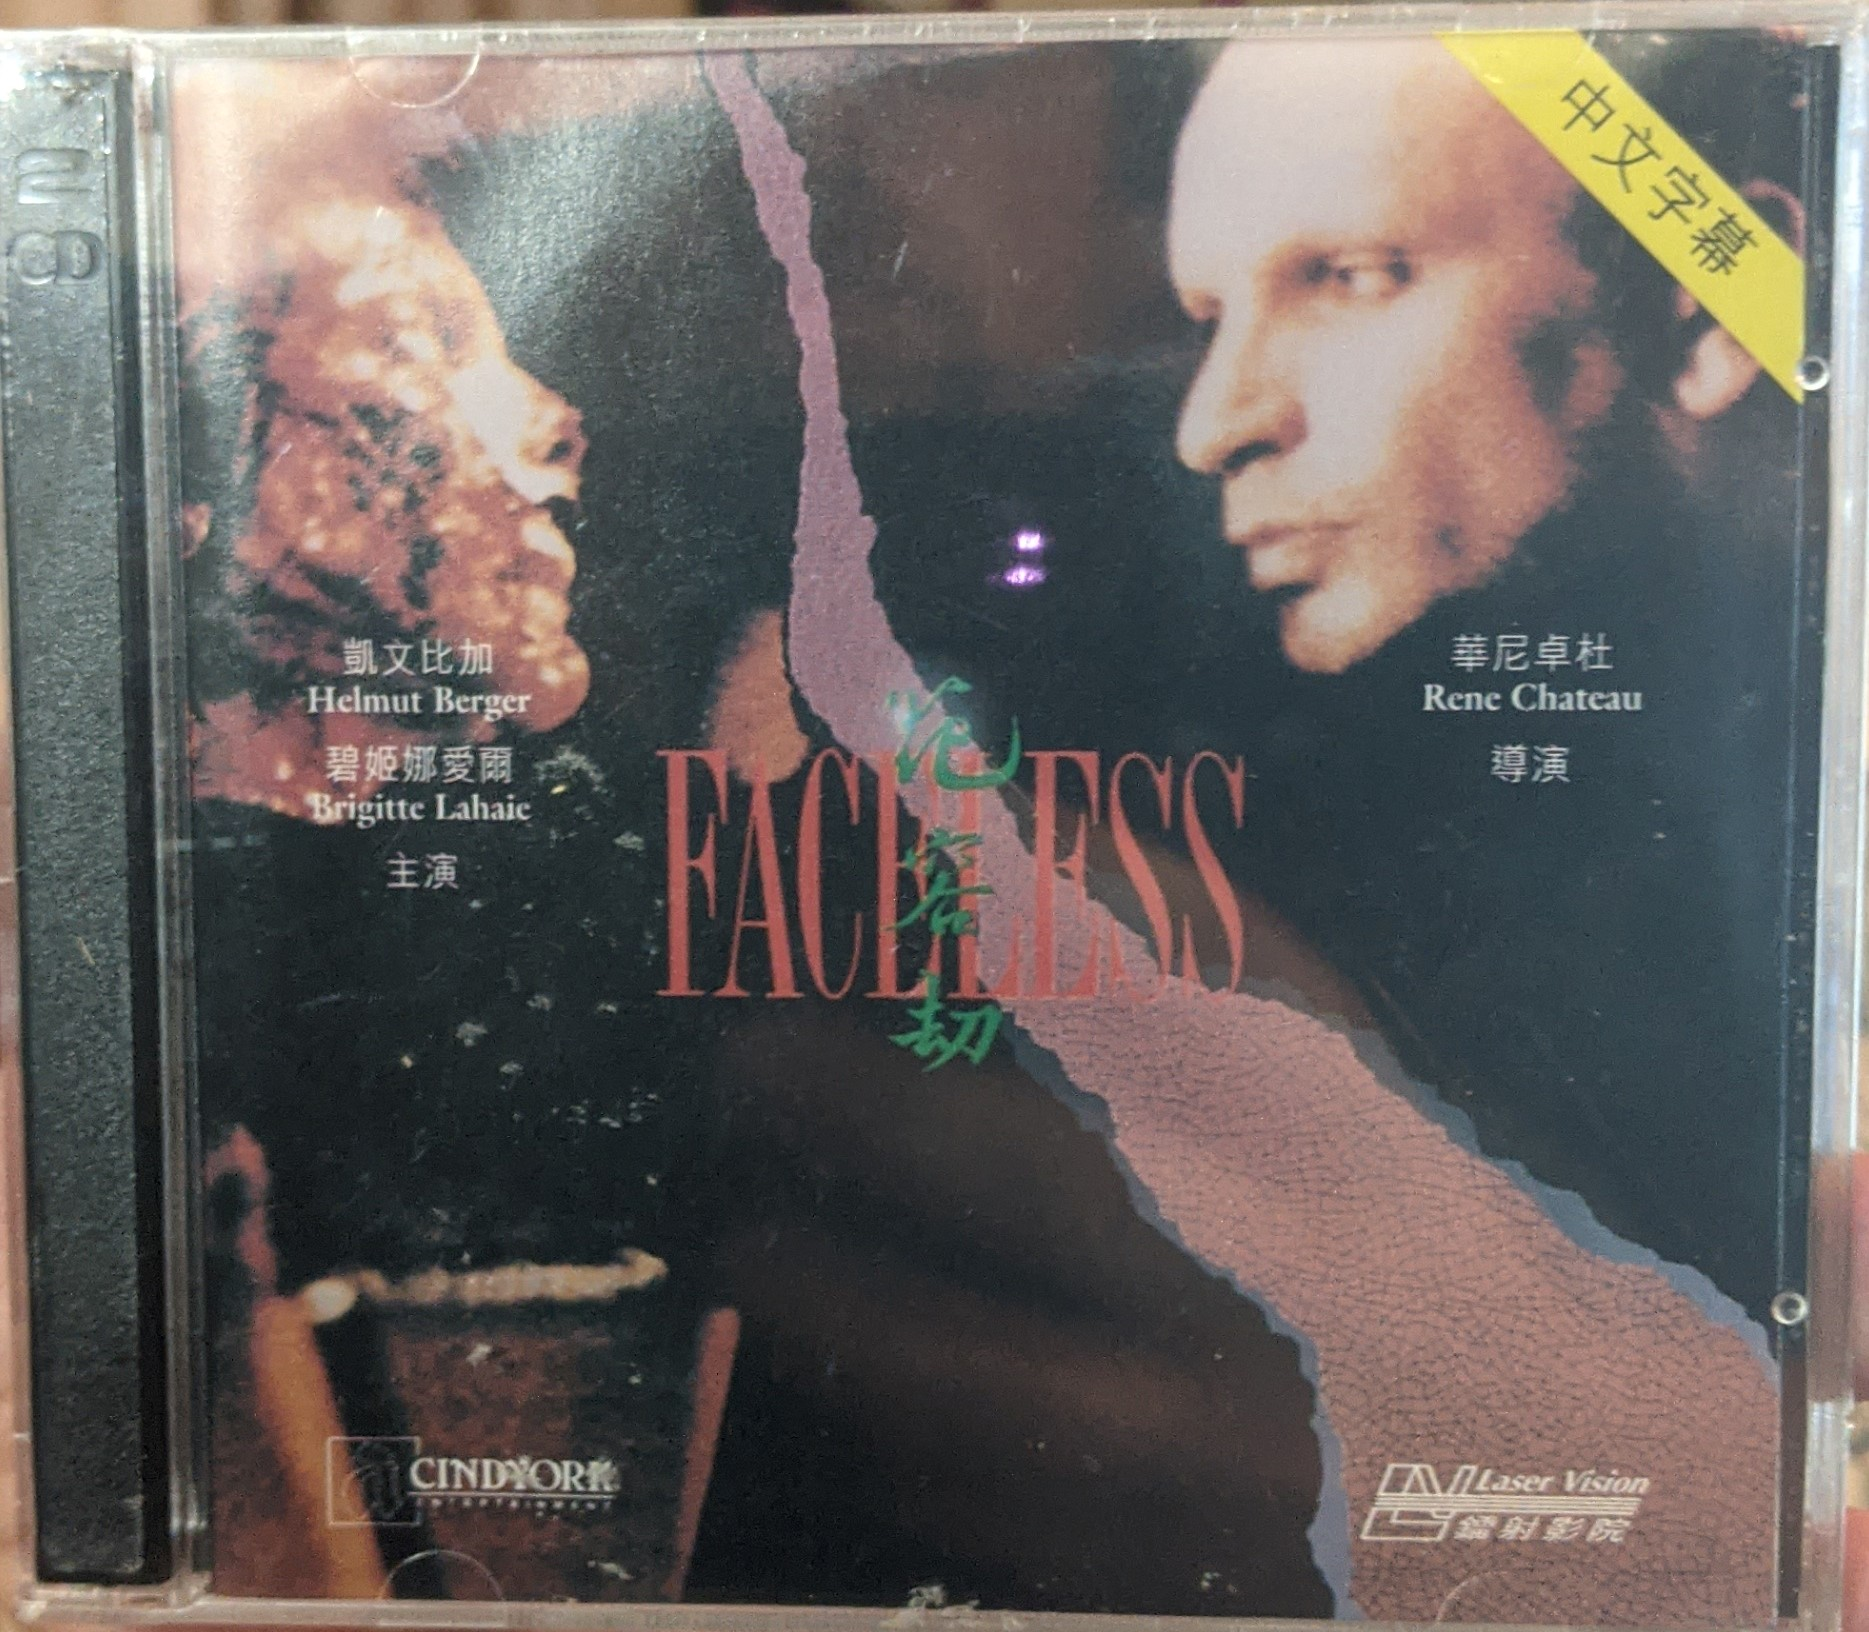 Faceless - Jess Franco VCD